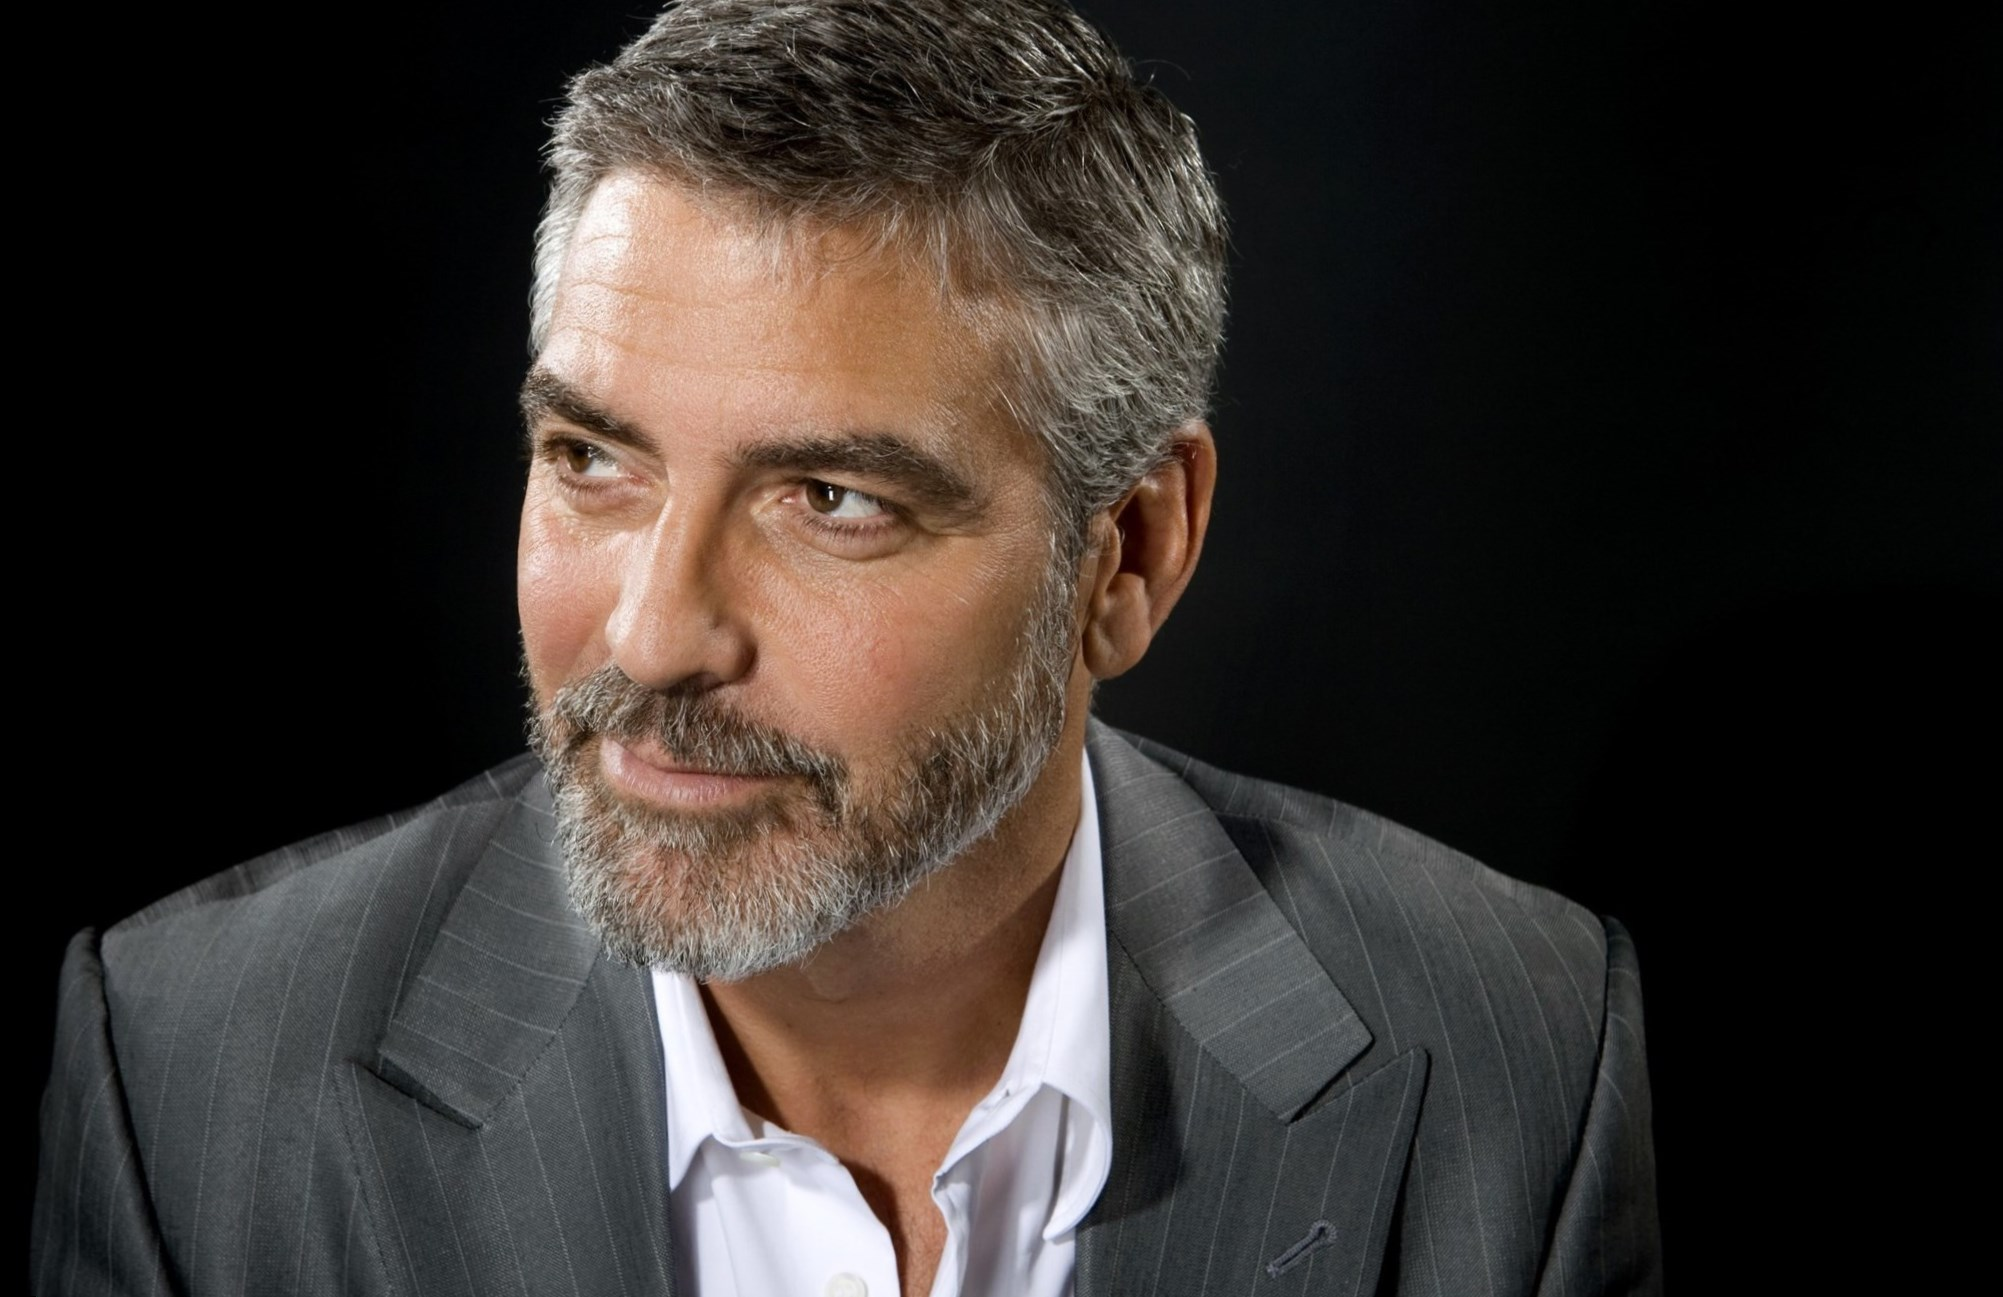 Coiffure Homme 58 Ans George Clooney Celebrity Net Worth Salary House Car